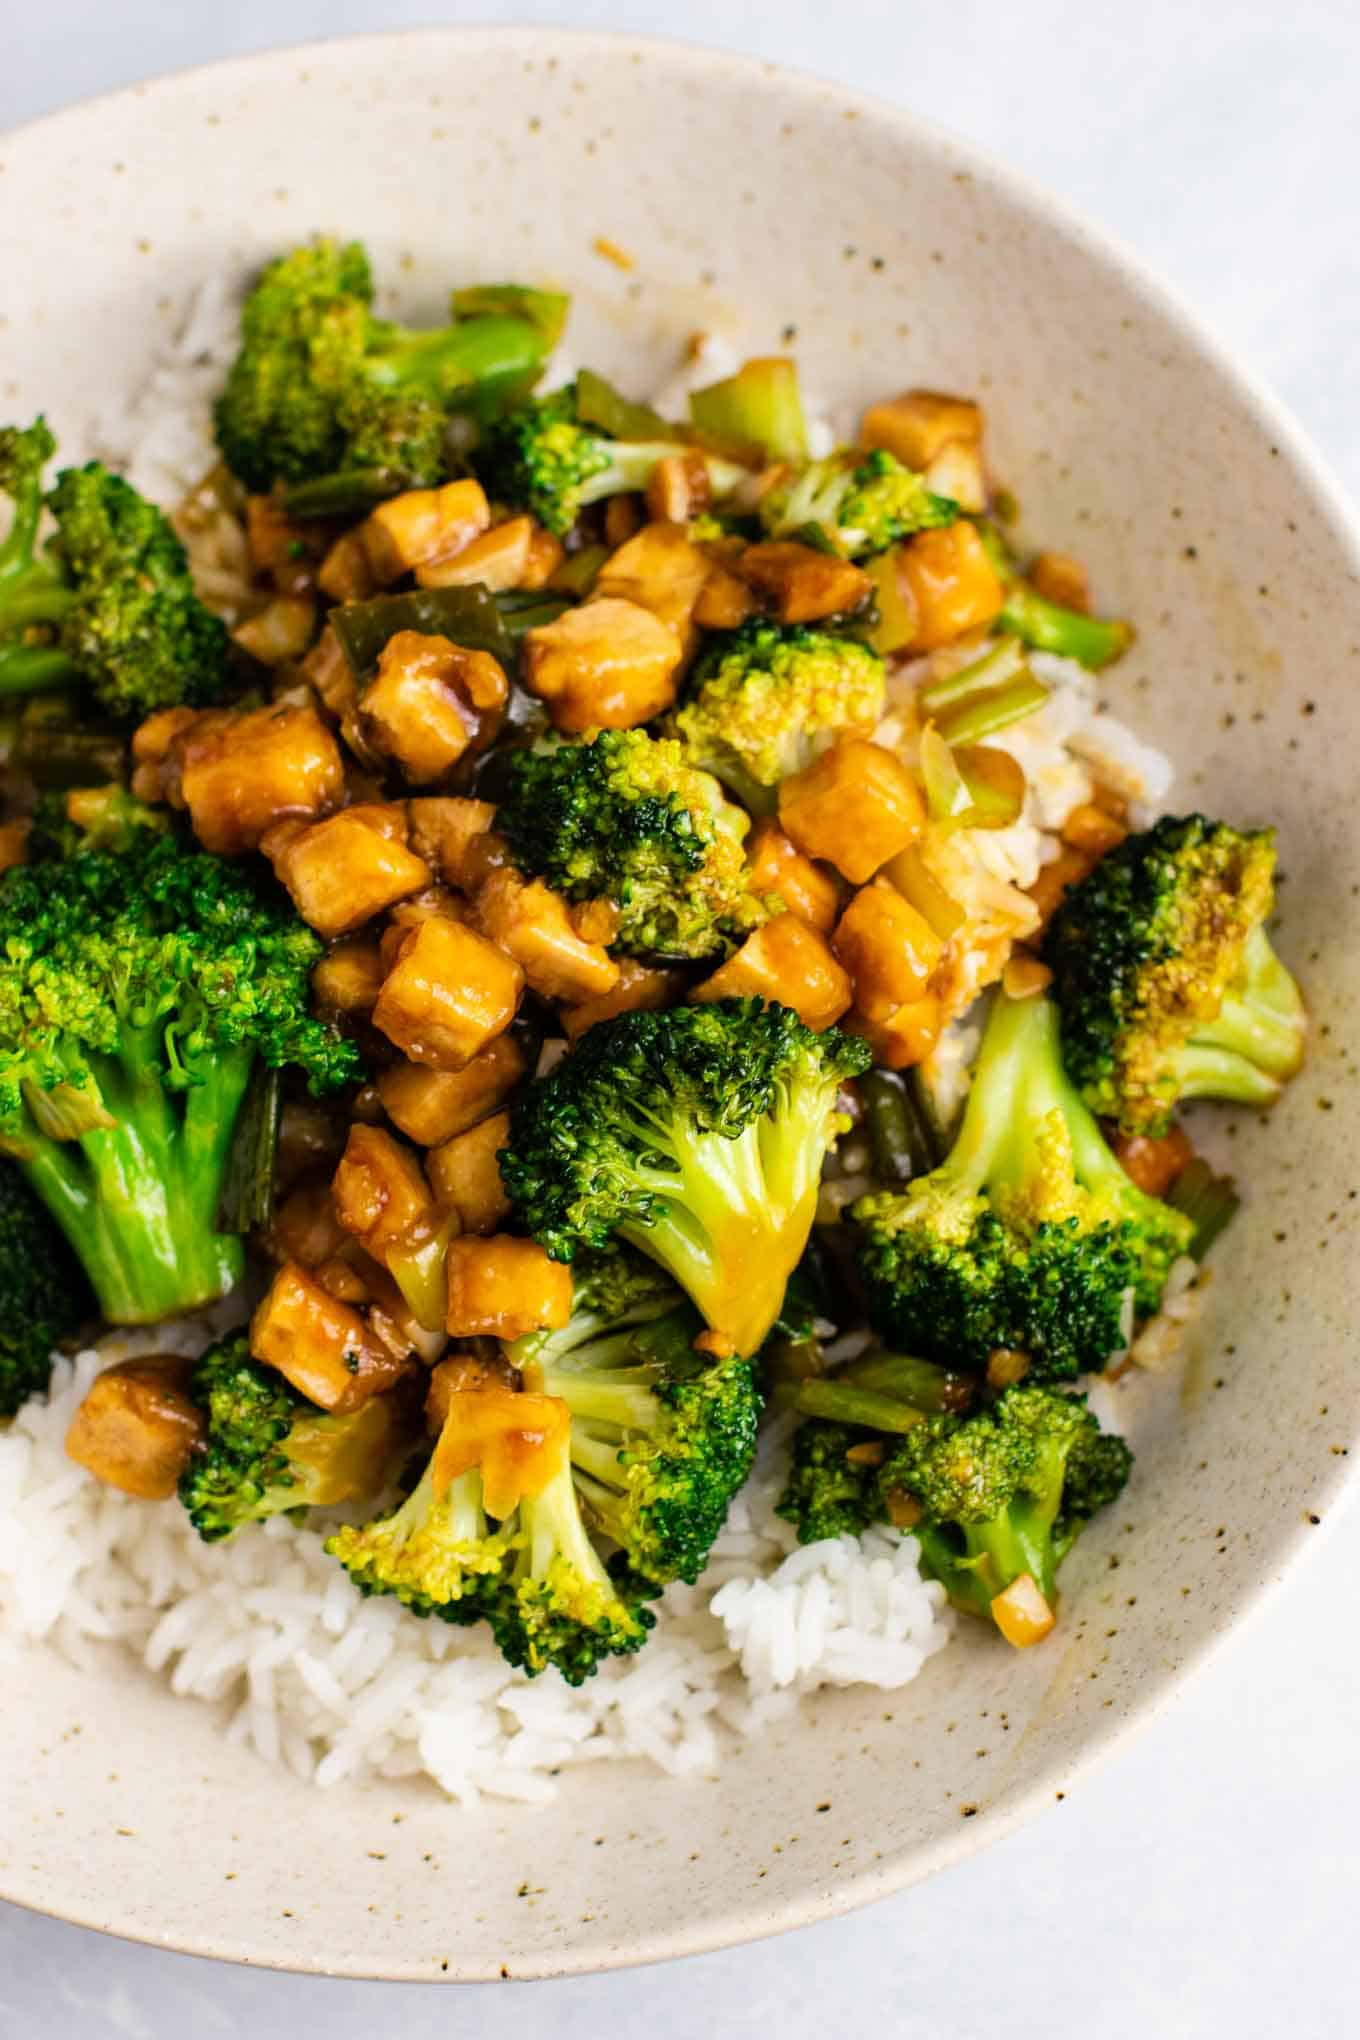 Broccoil tofu stir fry – so easy and tastes amazing! #broccoli #tofu #stirfry #stirfrysauce #vegan #dinner #dinnerrecipe #stirfryrecipe #tofubroccoli #garlictofu